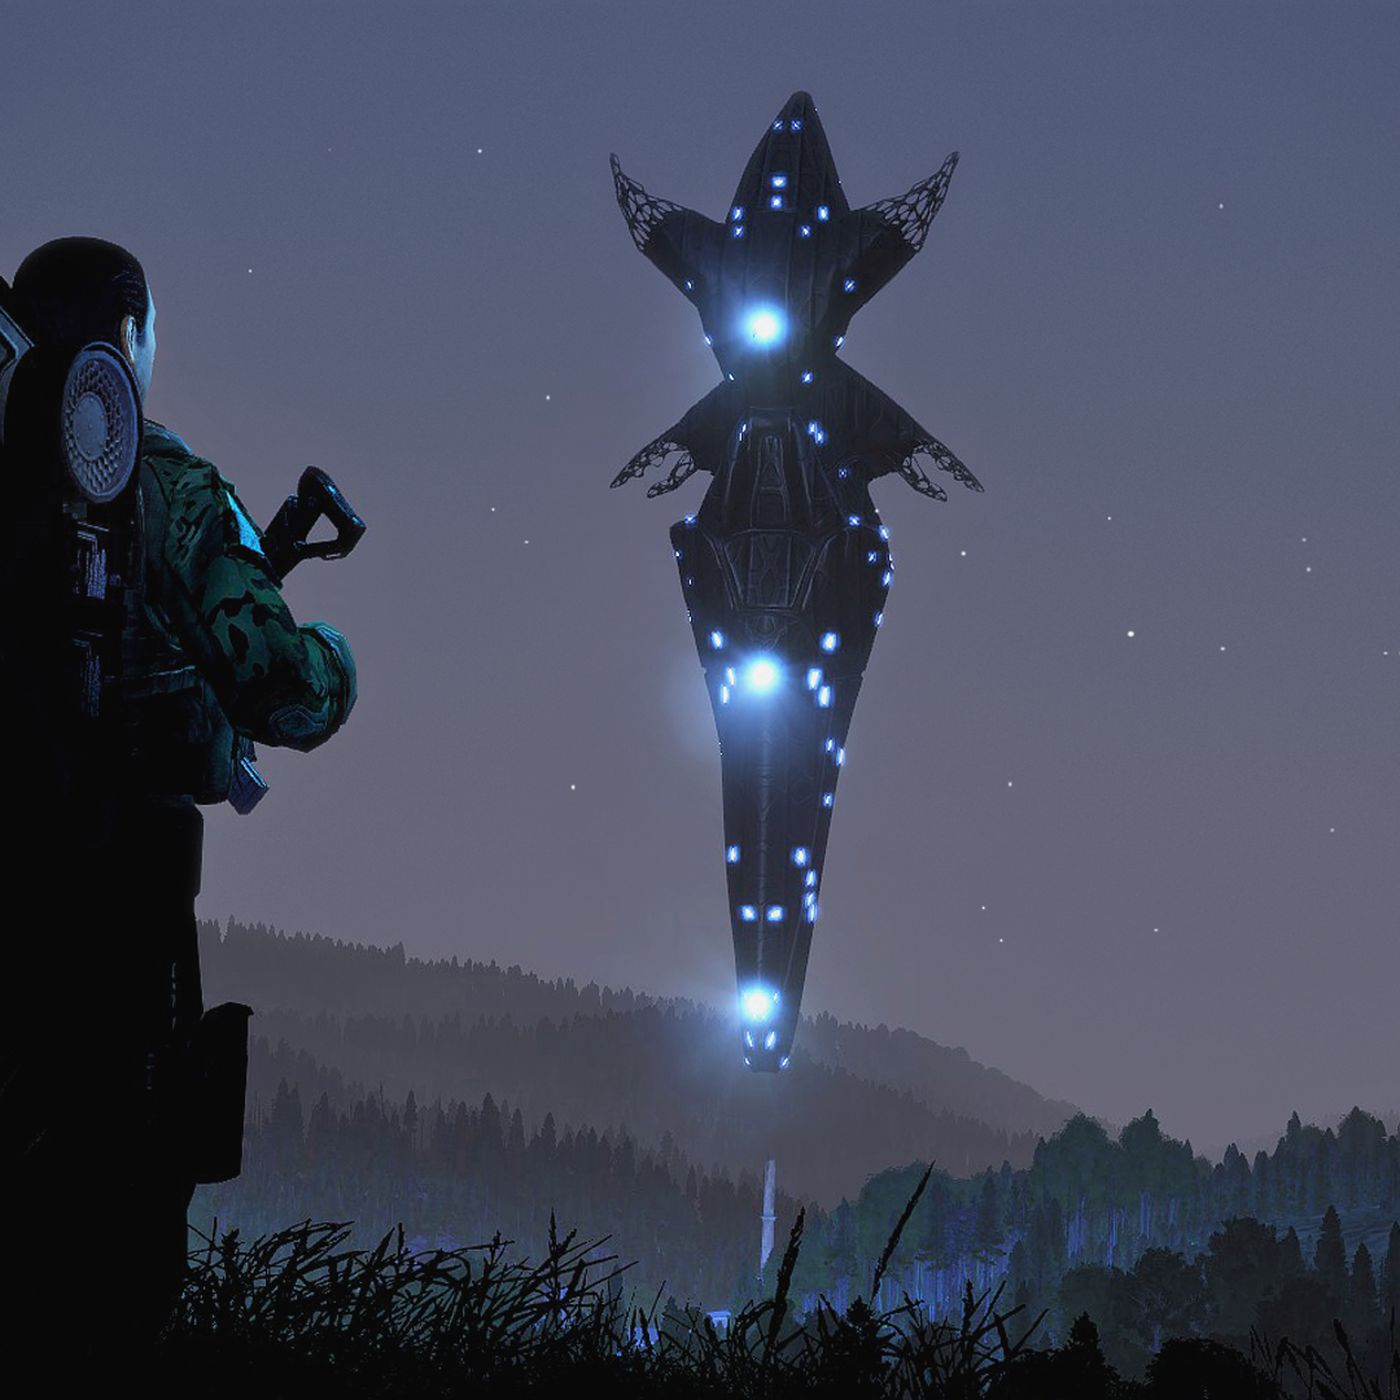 Best Arma 3 Missions 2020 Arma 3: Contact expansion announced: release date, map, and more